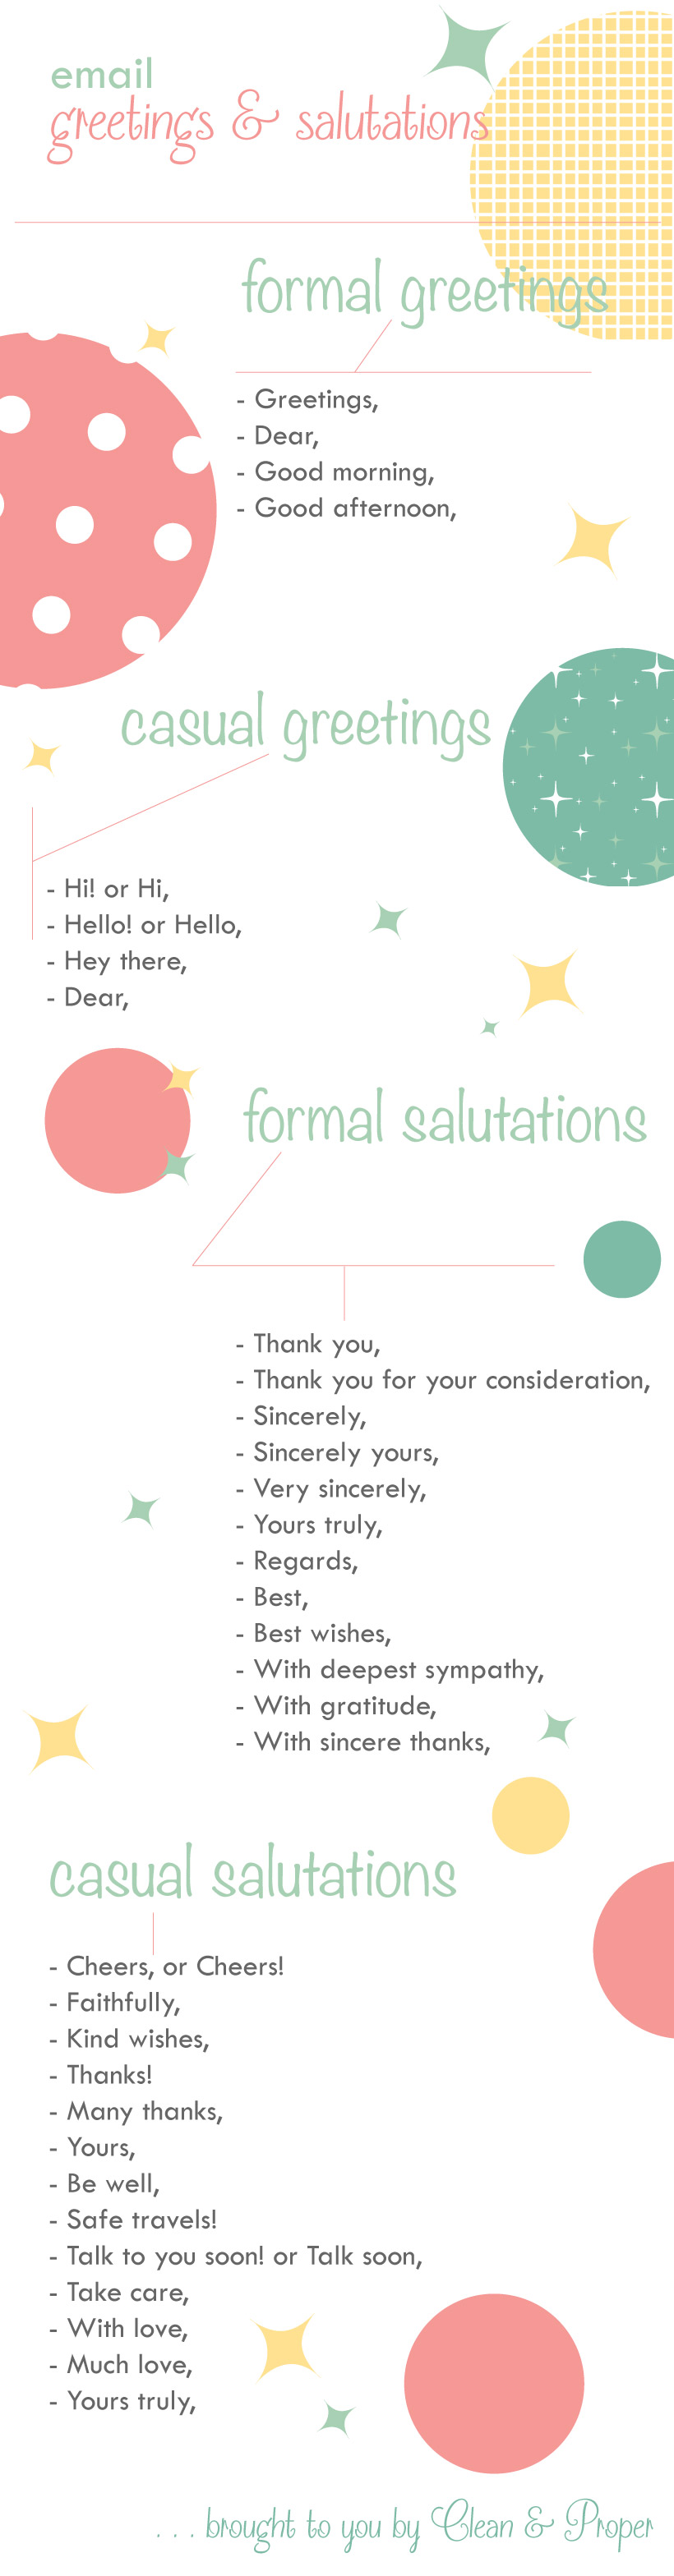 Email Greetings And Salutations Etiquette Manners Correspondence